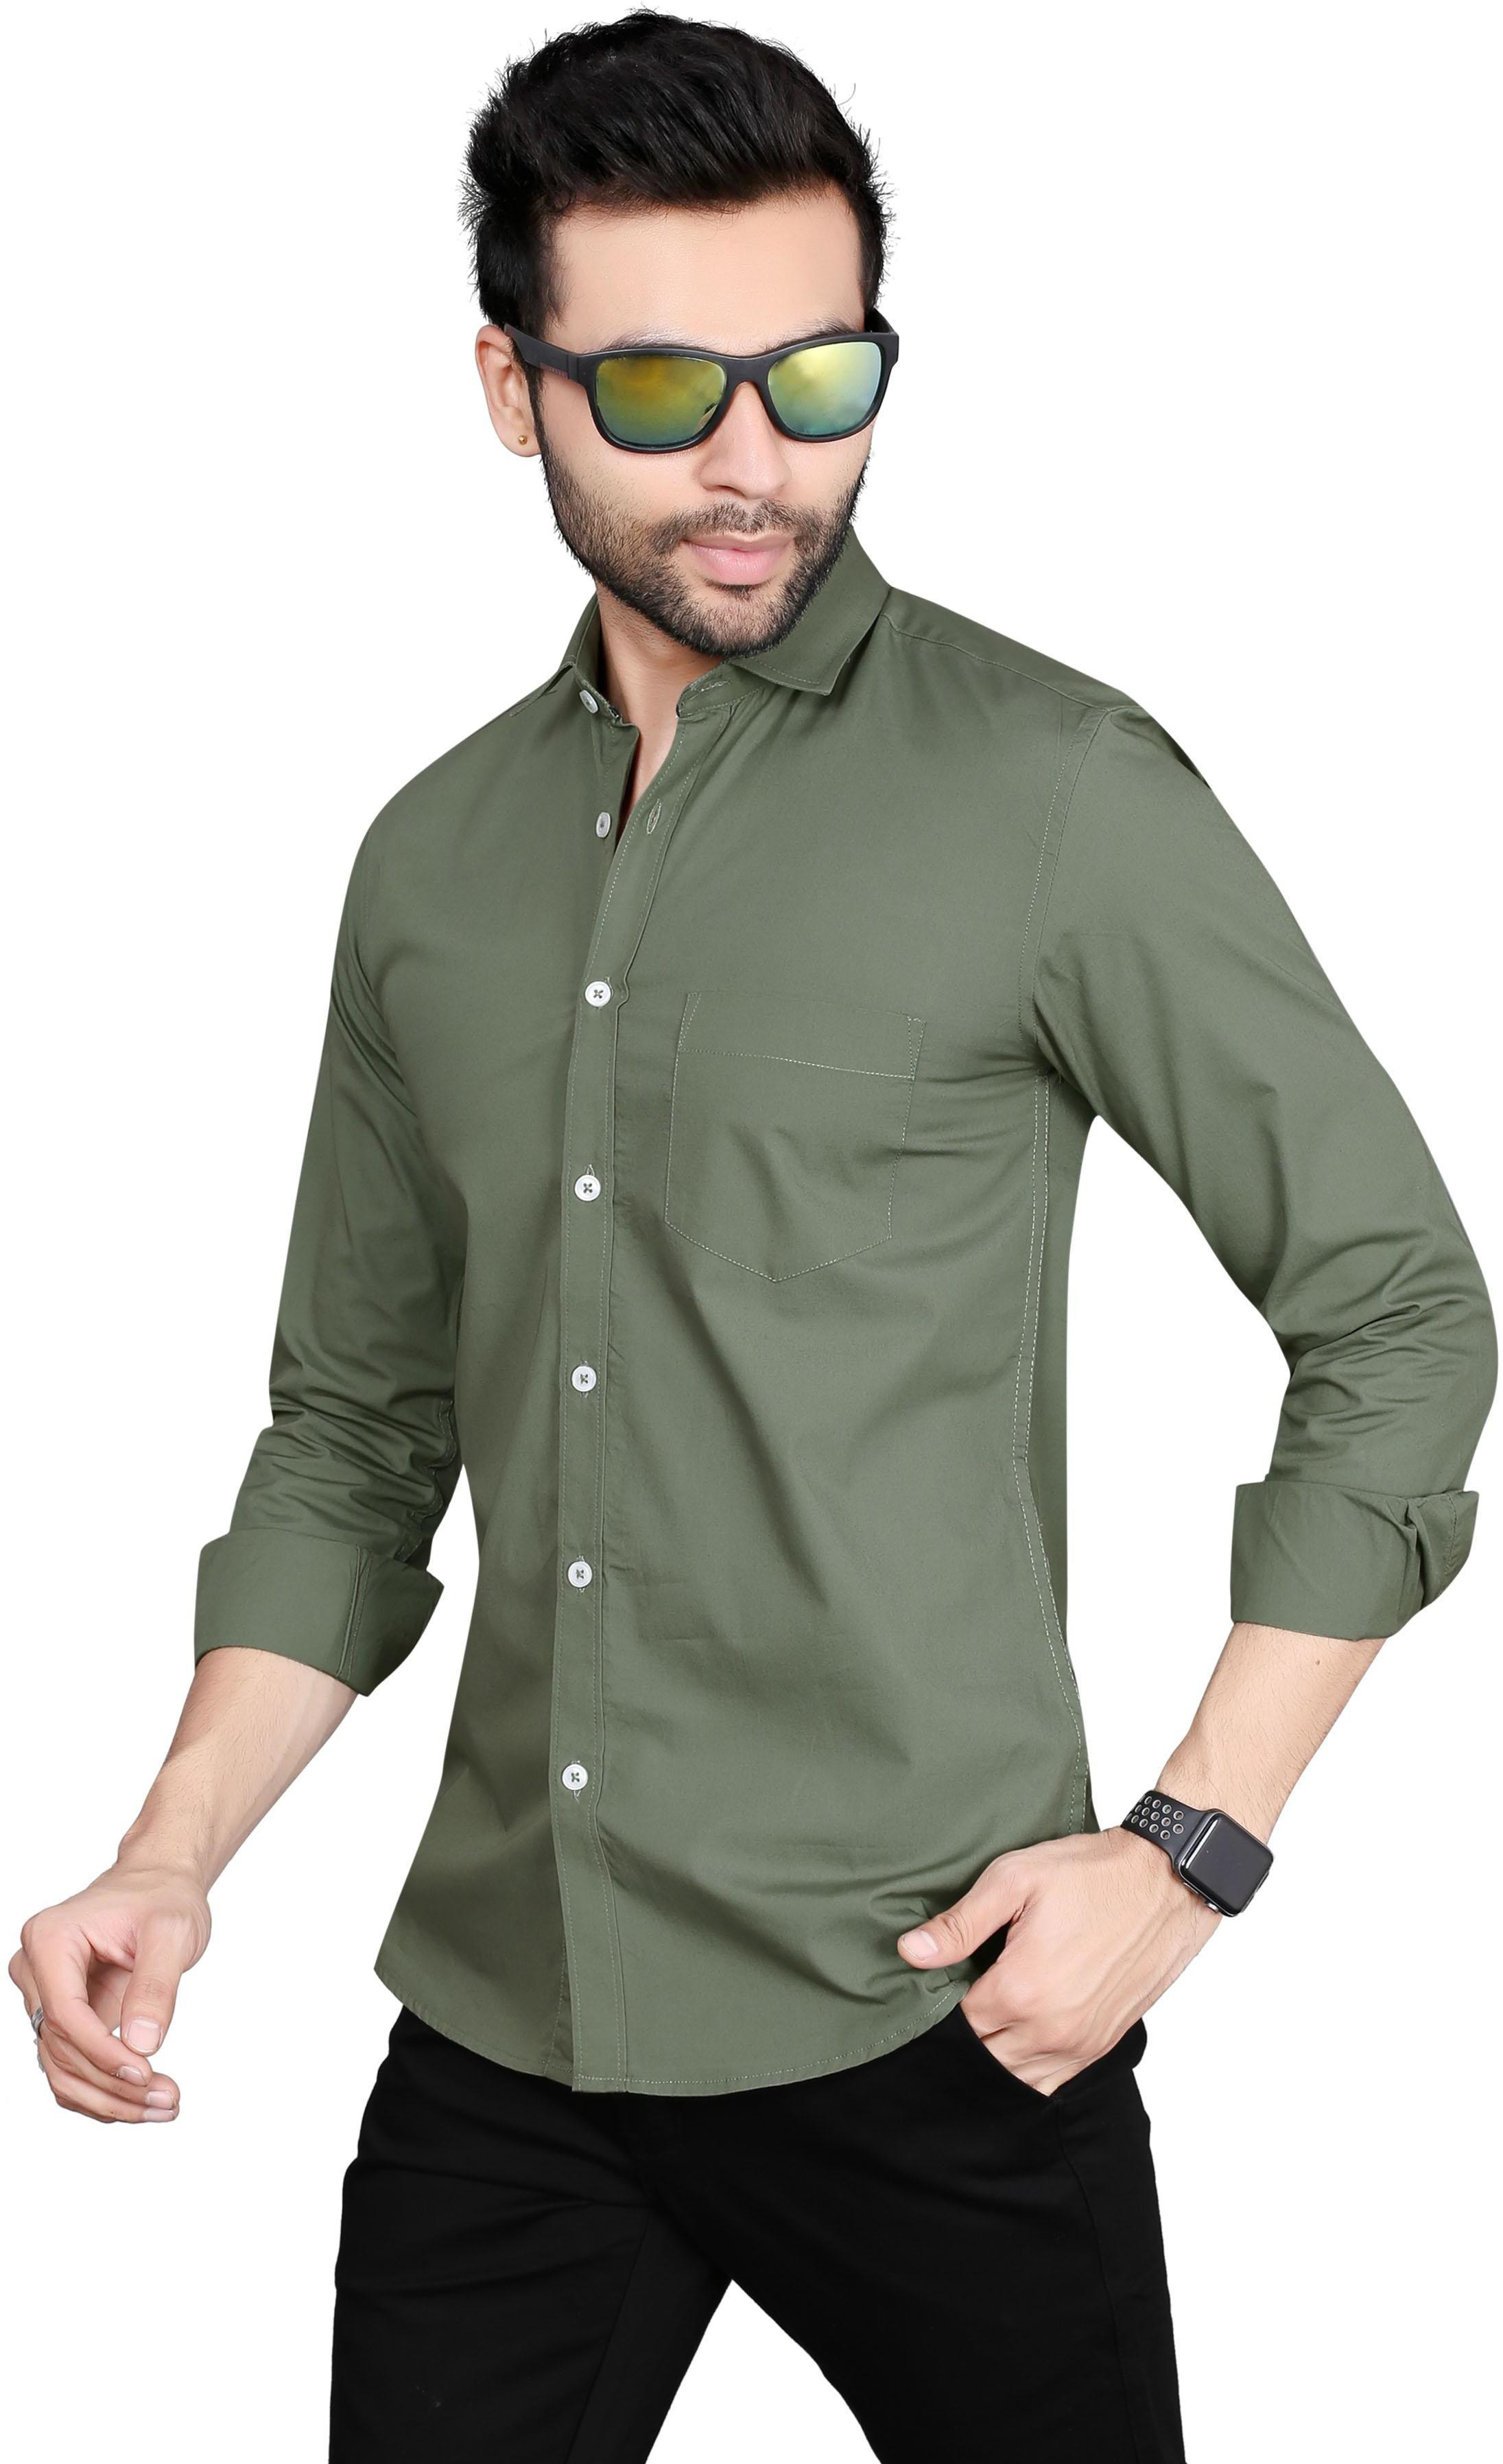 5TH ANFOLD Solid Pure Cotton Casual Full Long Sleev Rusty Green Spread Collar Mens Shirt